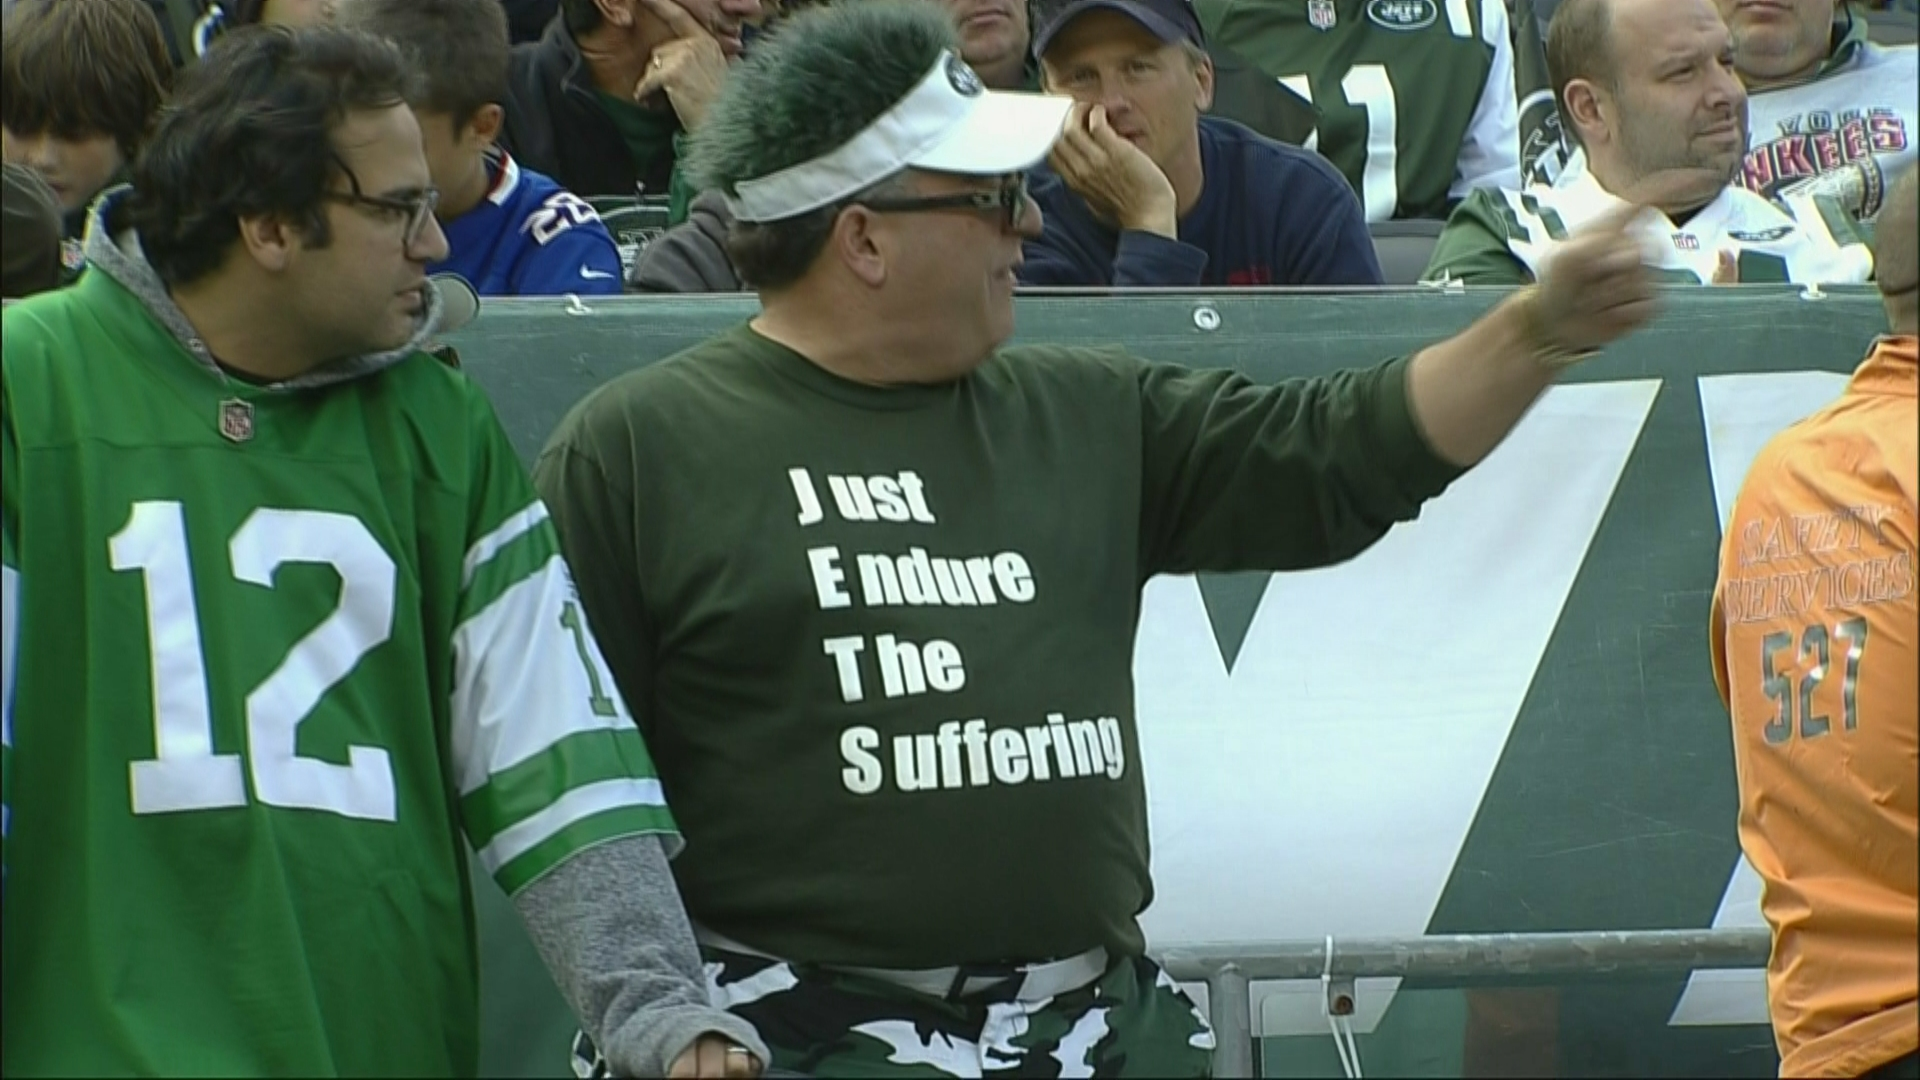 Jets fan's shirt reveals what 'J-E-T-S' stands for